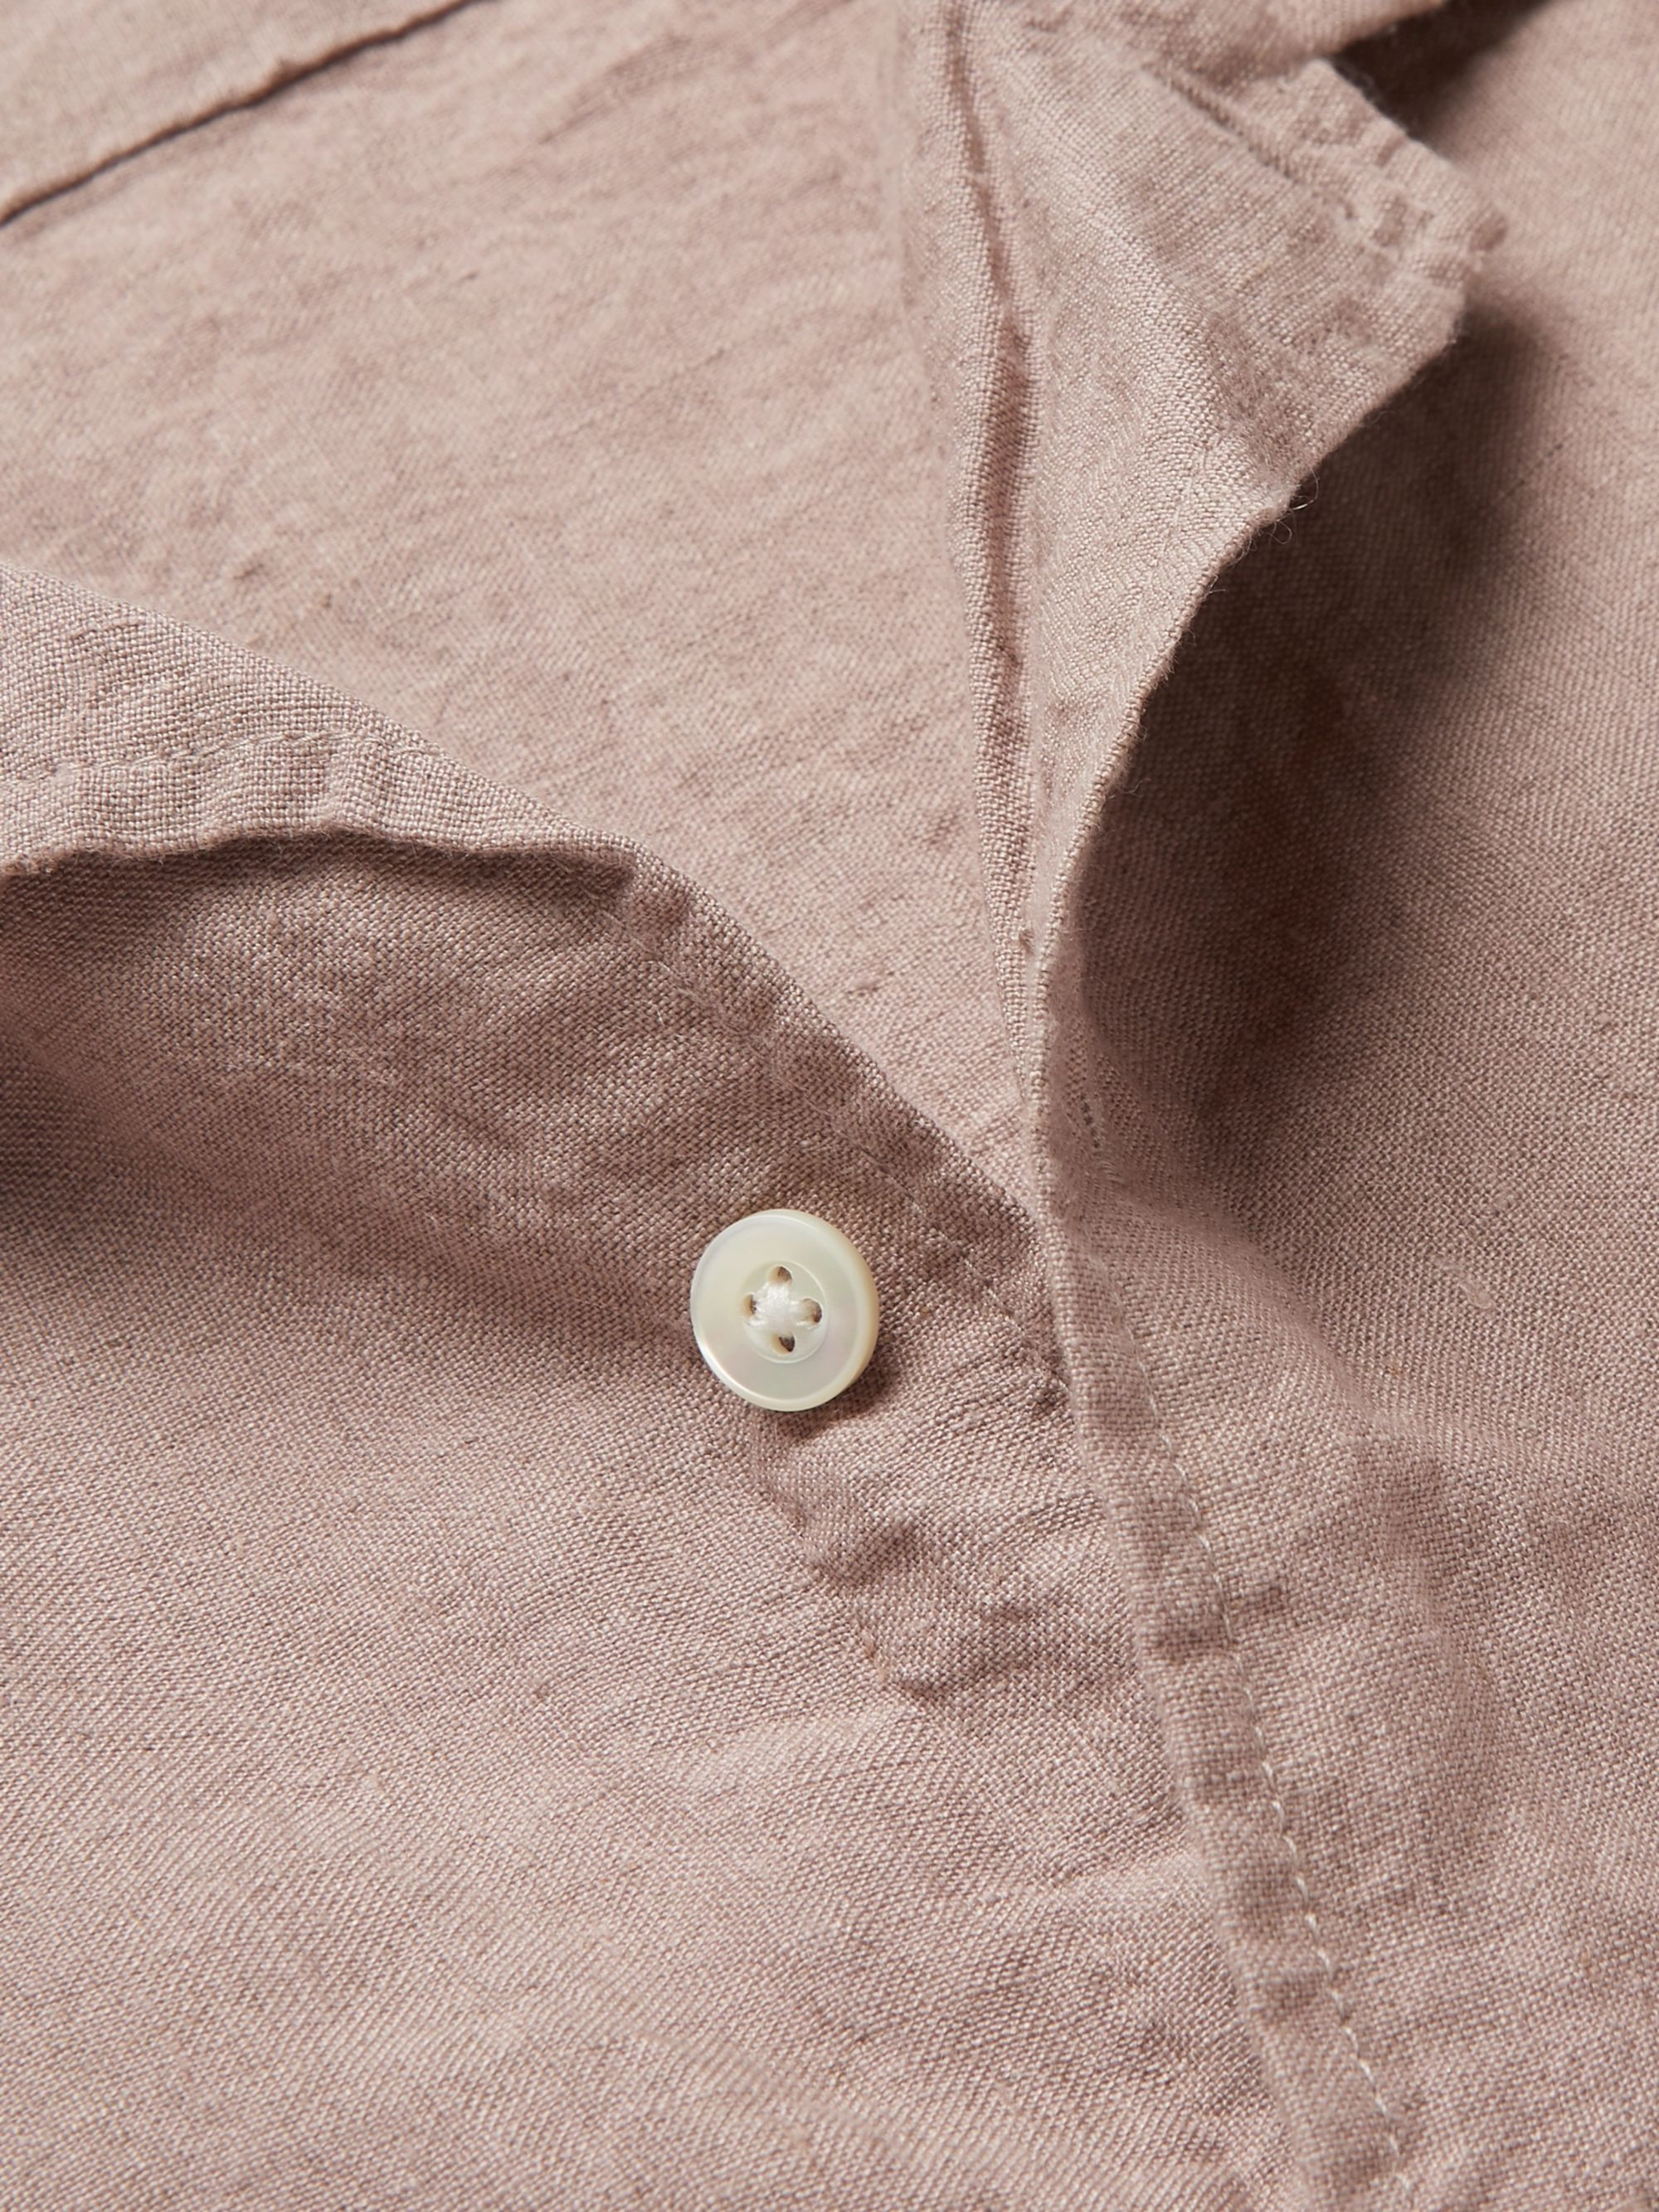 Pilgrim Surf + Supply Camp-Collar Slub Linen Shirt